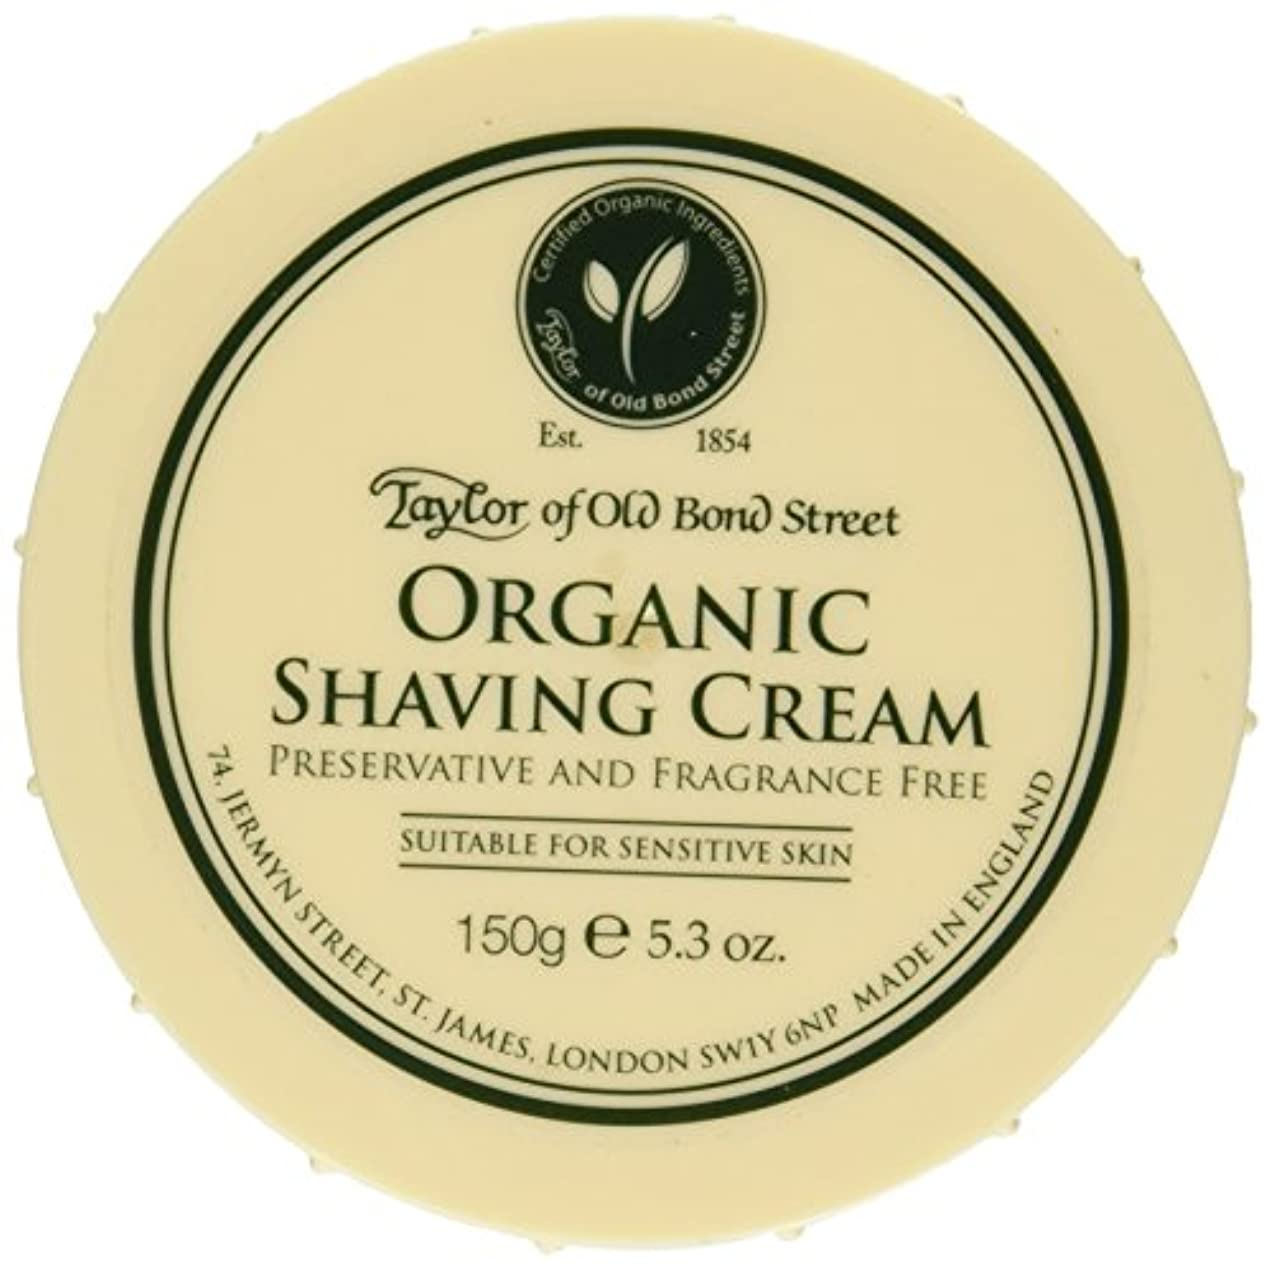 倉庫バスルームフォルダTaylor of Old Bond Street Organic Shaving Cream w/ Aloe & Jojoba *New* 5.3 oz. by Taylor of Old Bond Street